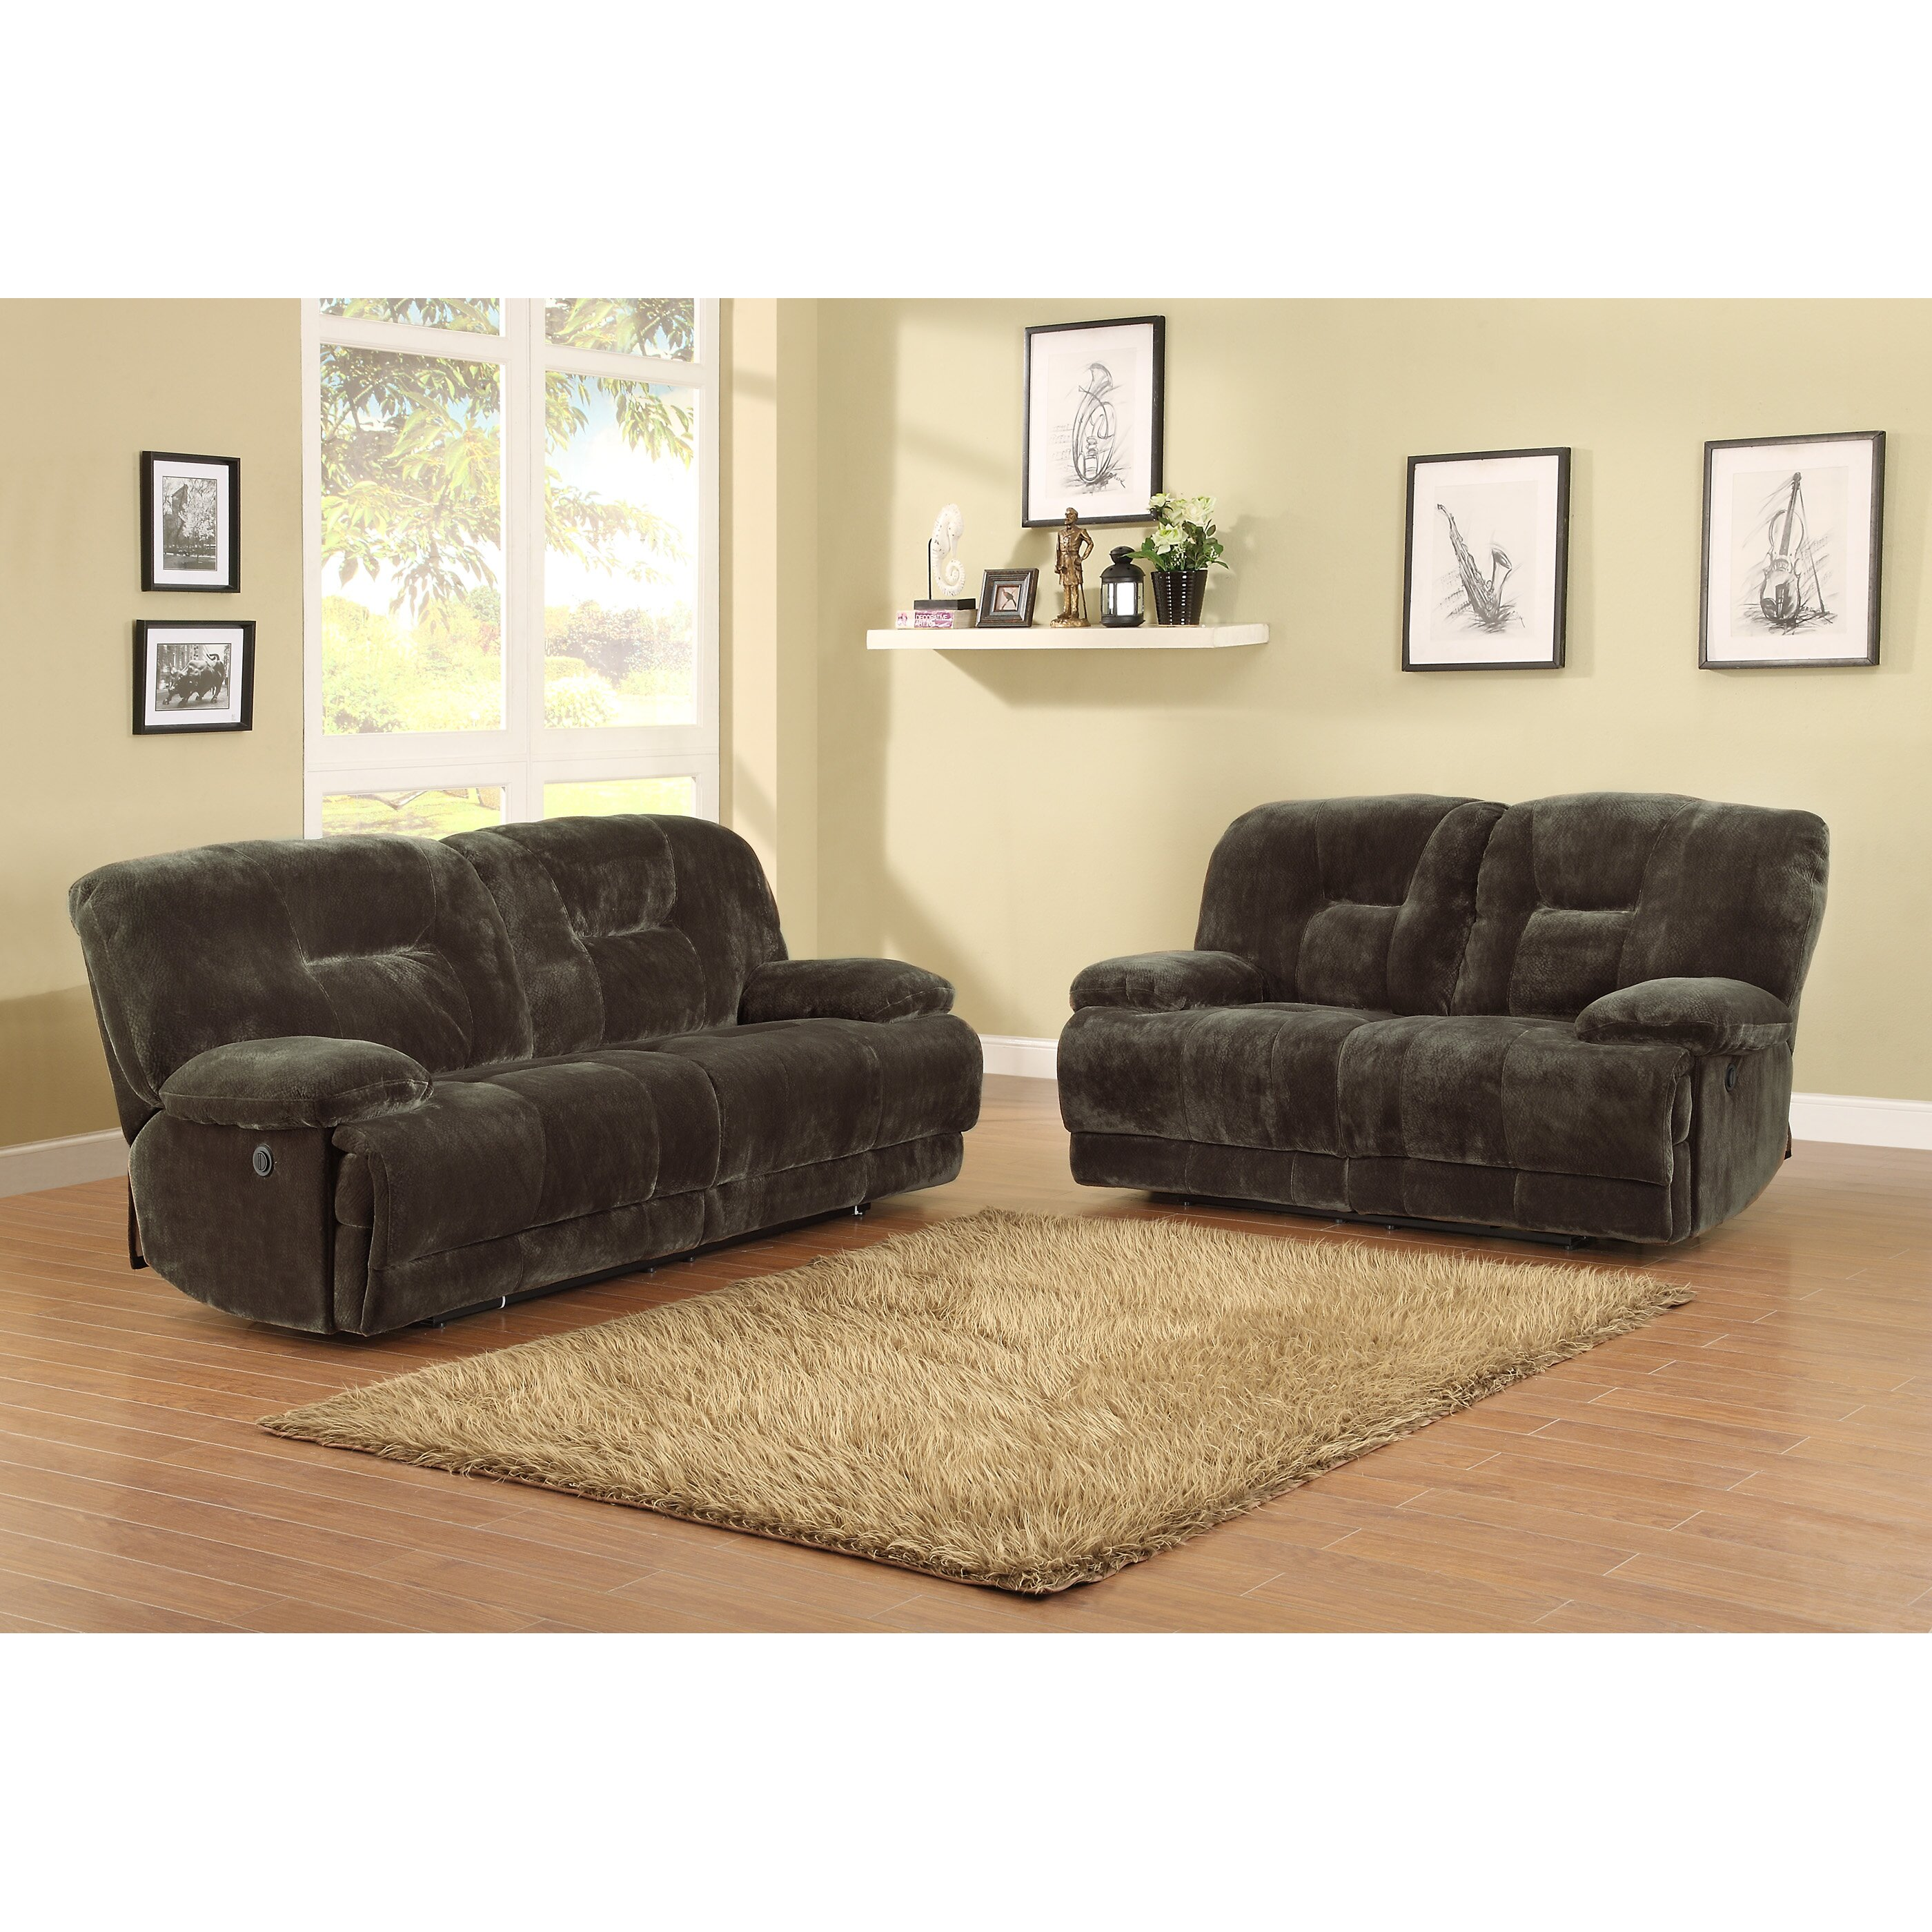 Woodhaven Living Room Furniture Woodhaven Hill Geoffrey Double Reclining Sofa Reviews Wayfair